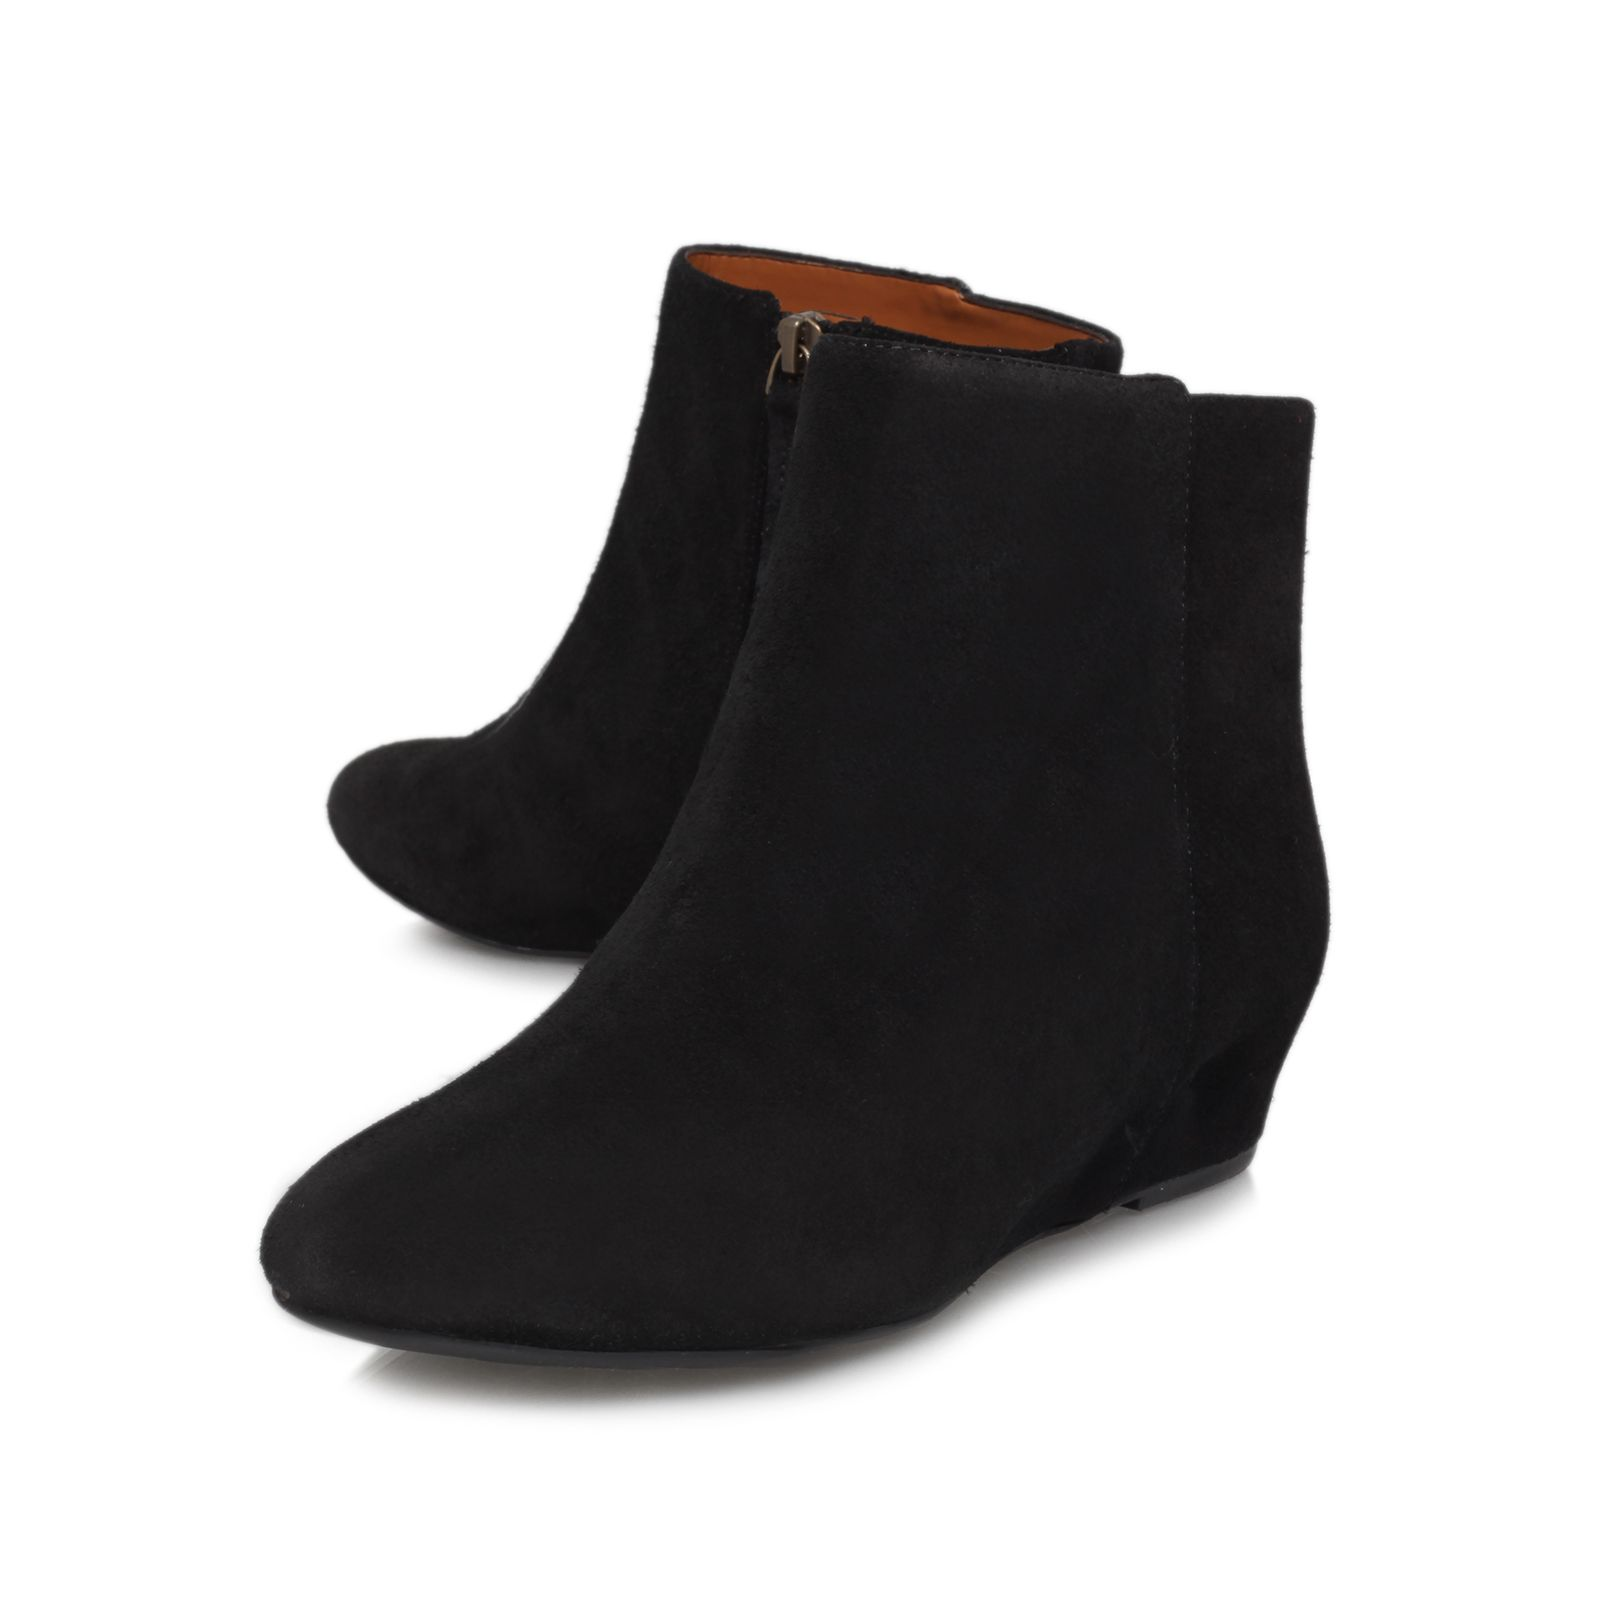 Metalina ankle boots